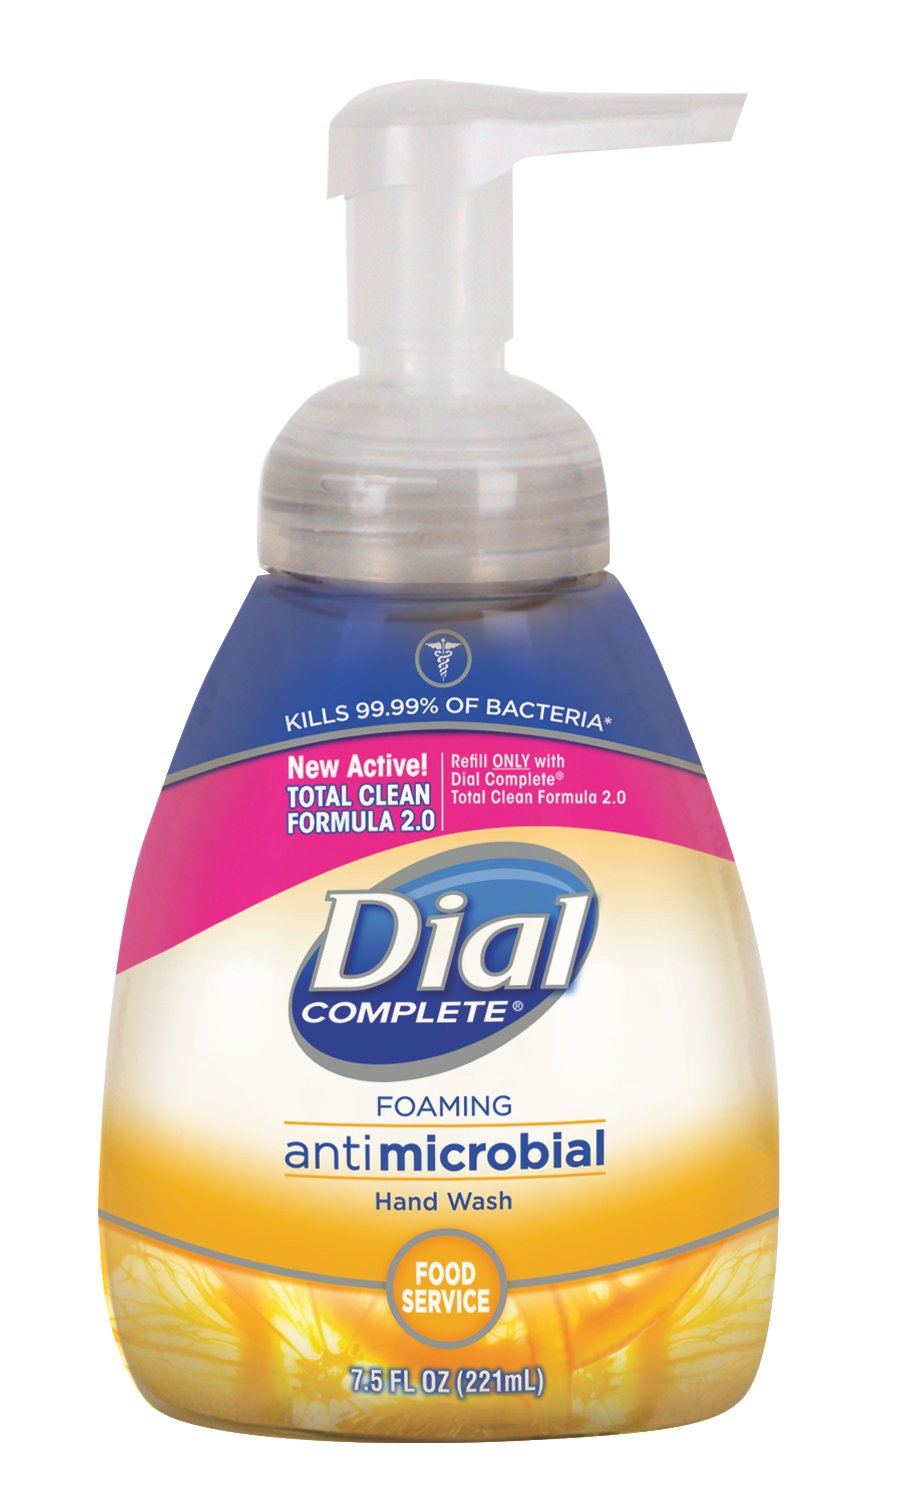 Dial Complete 1210130 Antimicrobial Foaming Kitchen Hand Soap with Tabletop Pump, 7.5oz Bottle (Pack of 8) by Dial